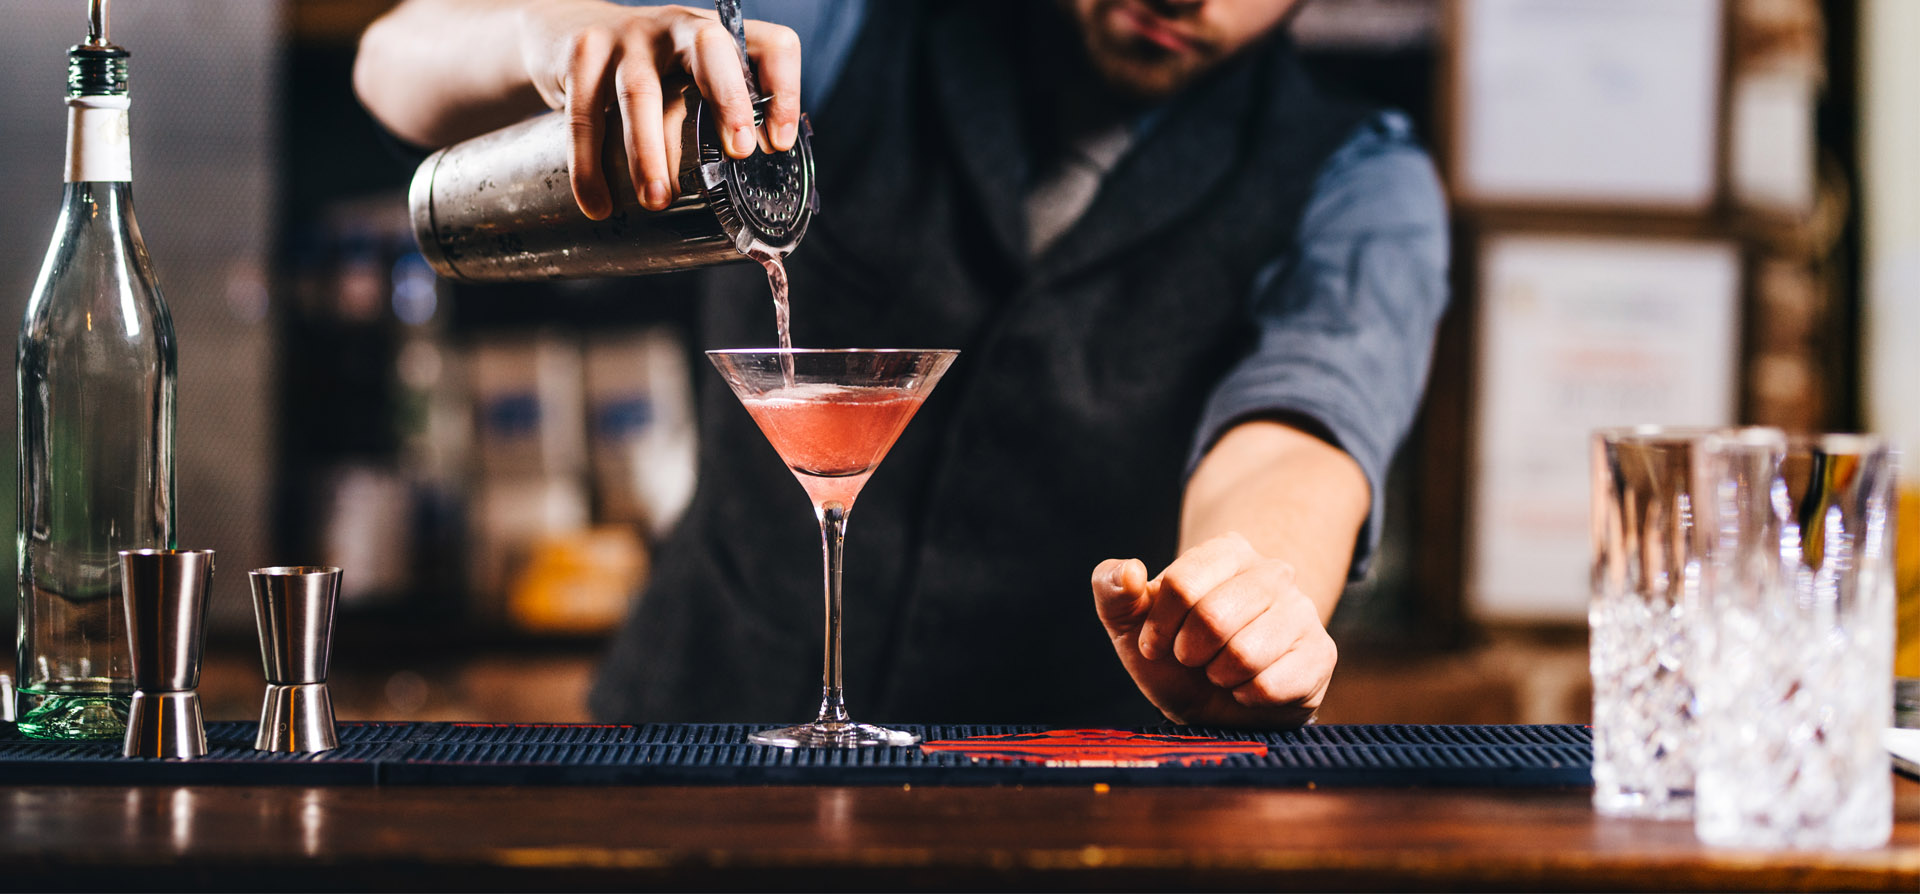 Tampa Florida Bar Tending Service | Wedding bar tender | Event bar tender